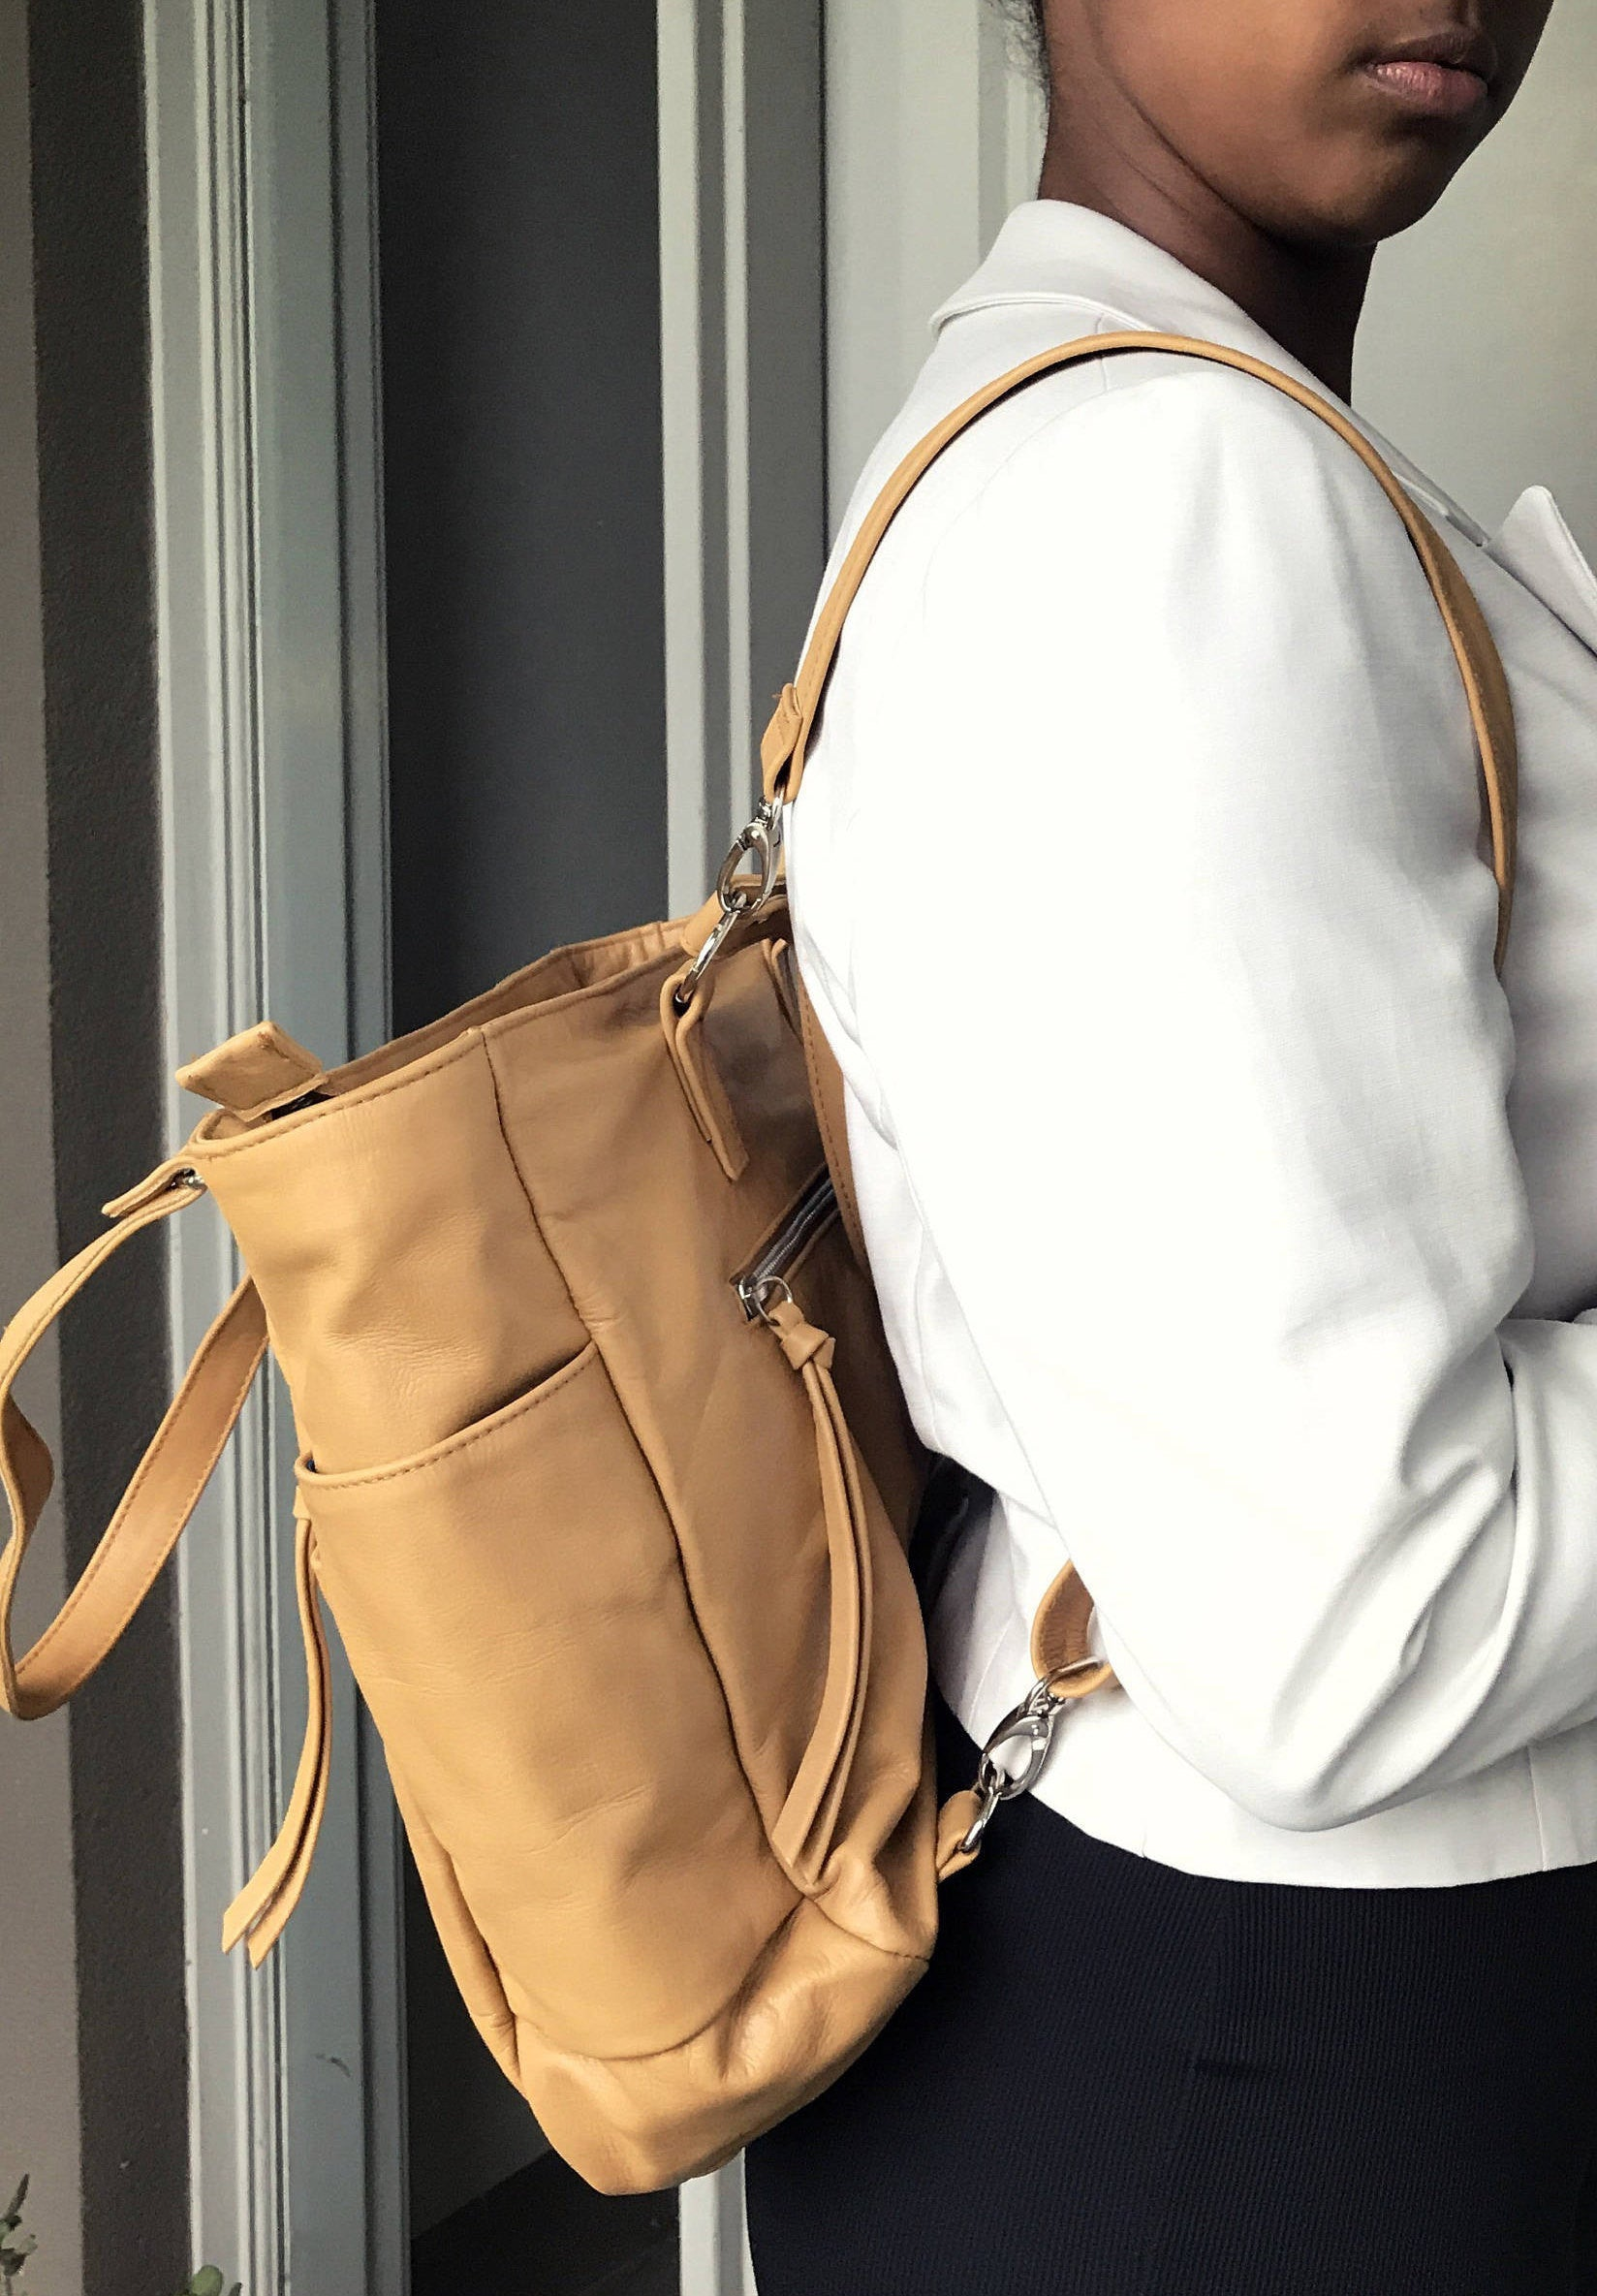 The Envoyage Backpack - Leather tote backpack bag